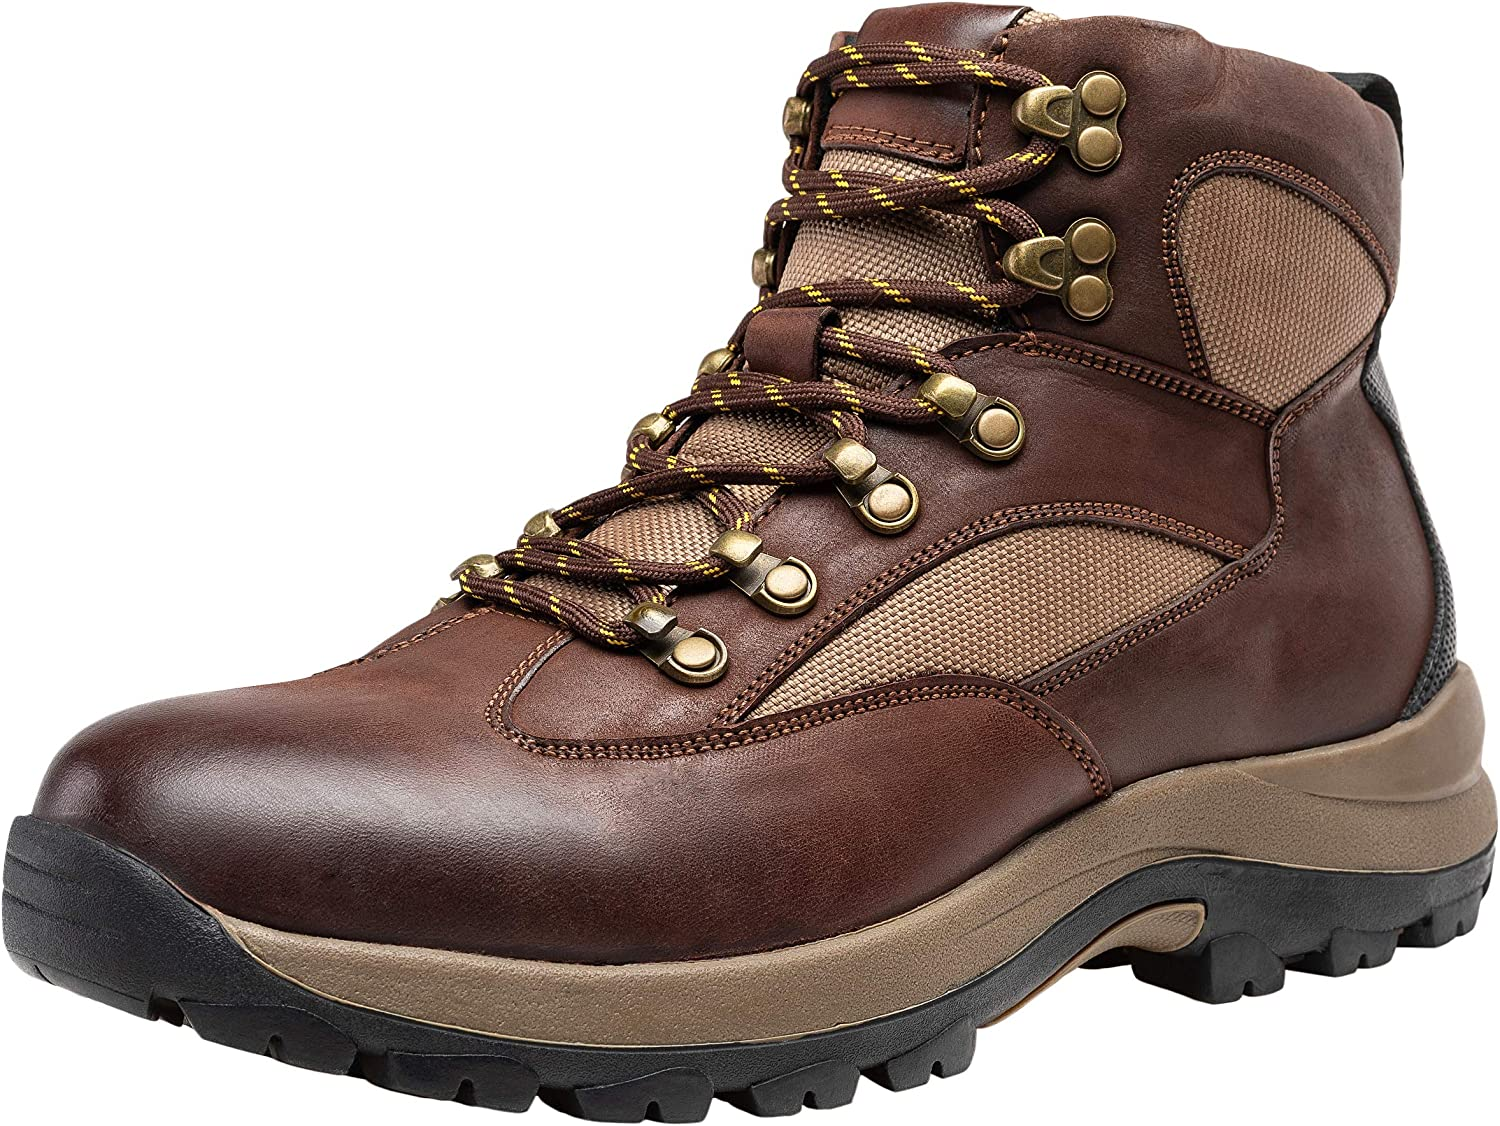 JOUSEN Men's Hiking Boot Leather Work Boots for Men (11.5D(M) US, Brown)